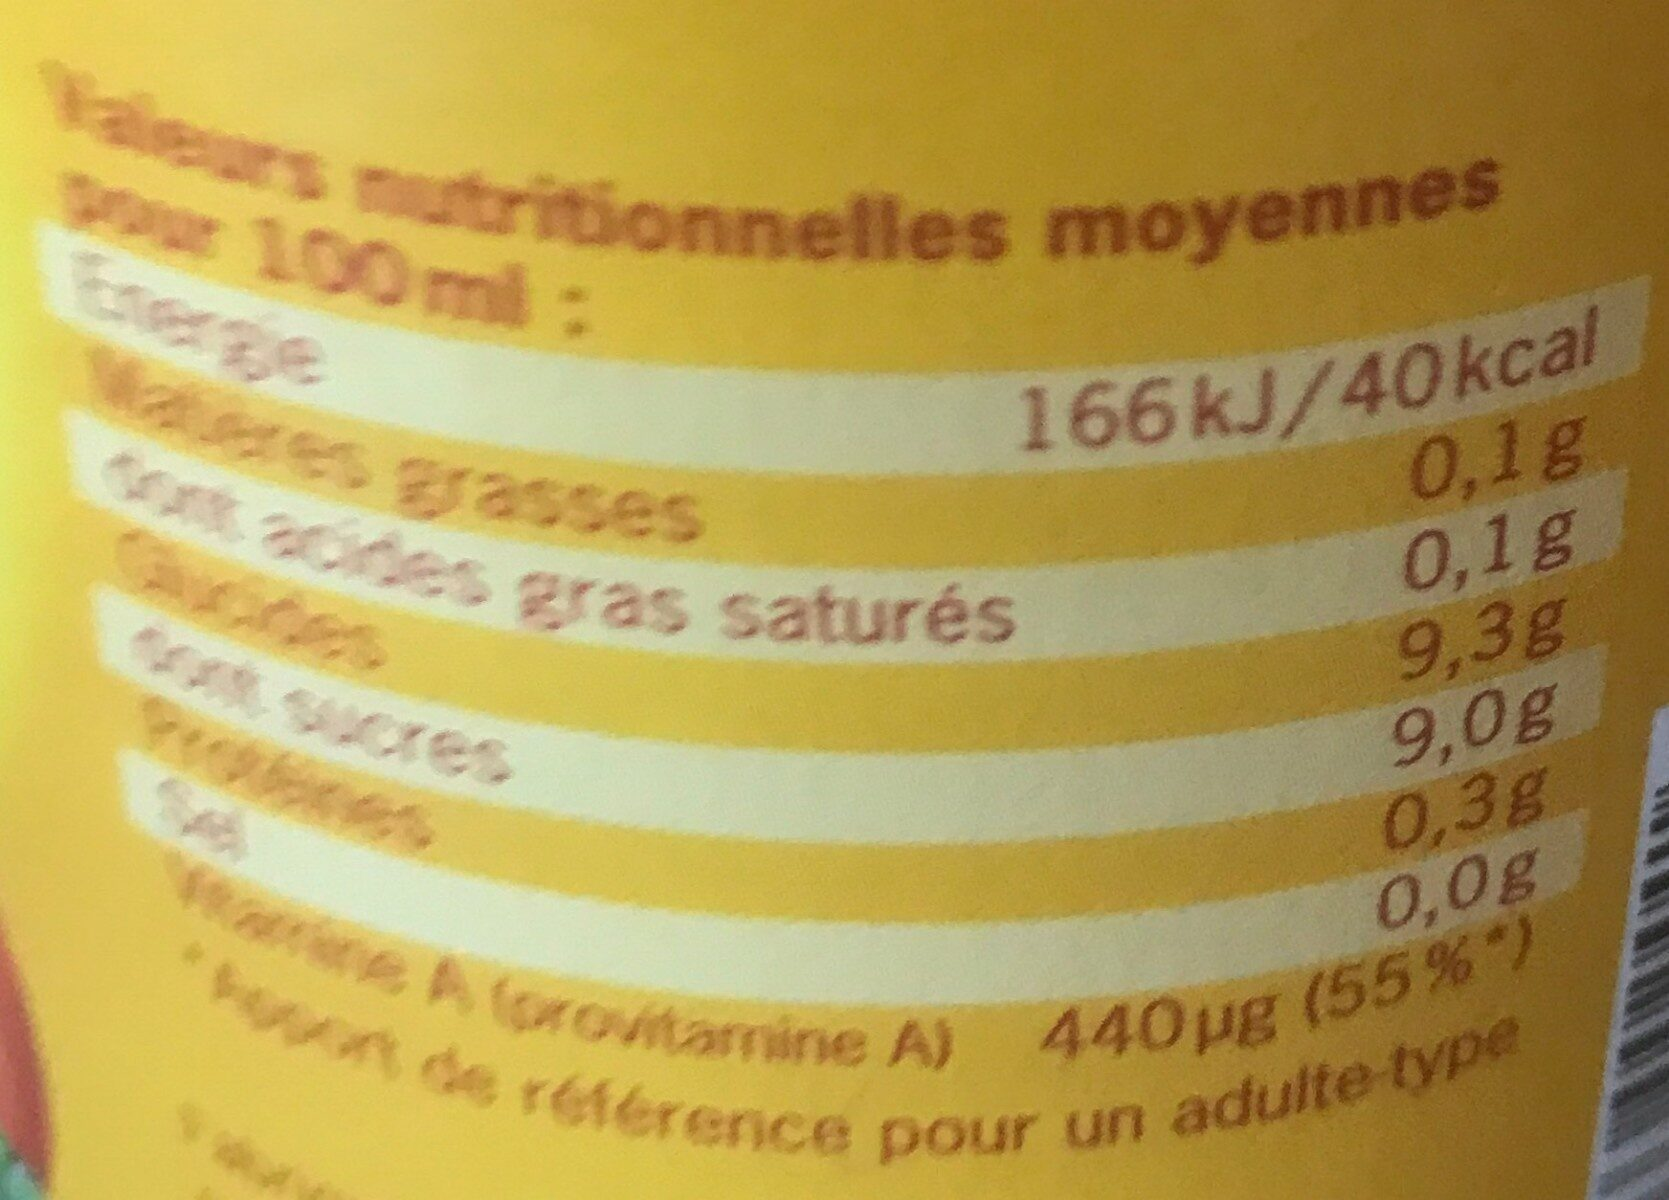 Jus De Pomme-carotte - Nutrition facts - fr